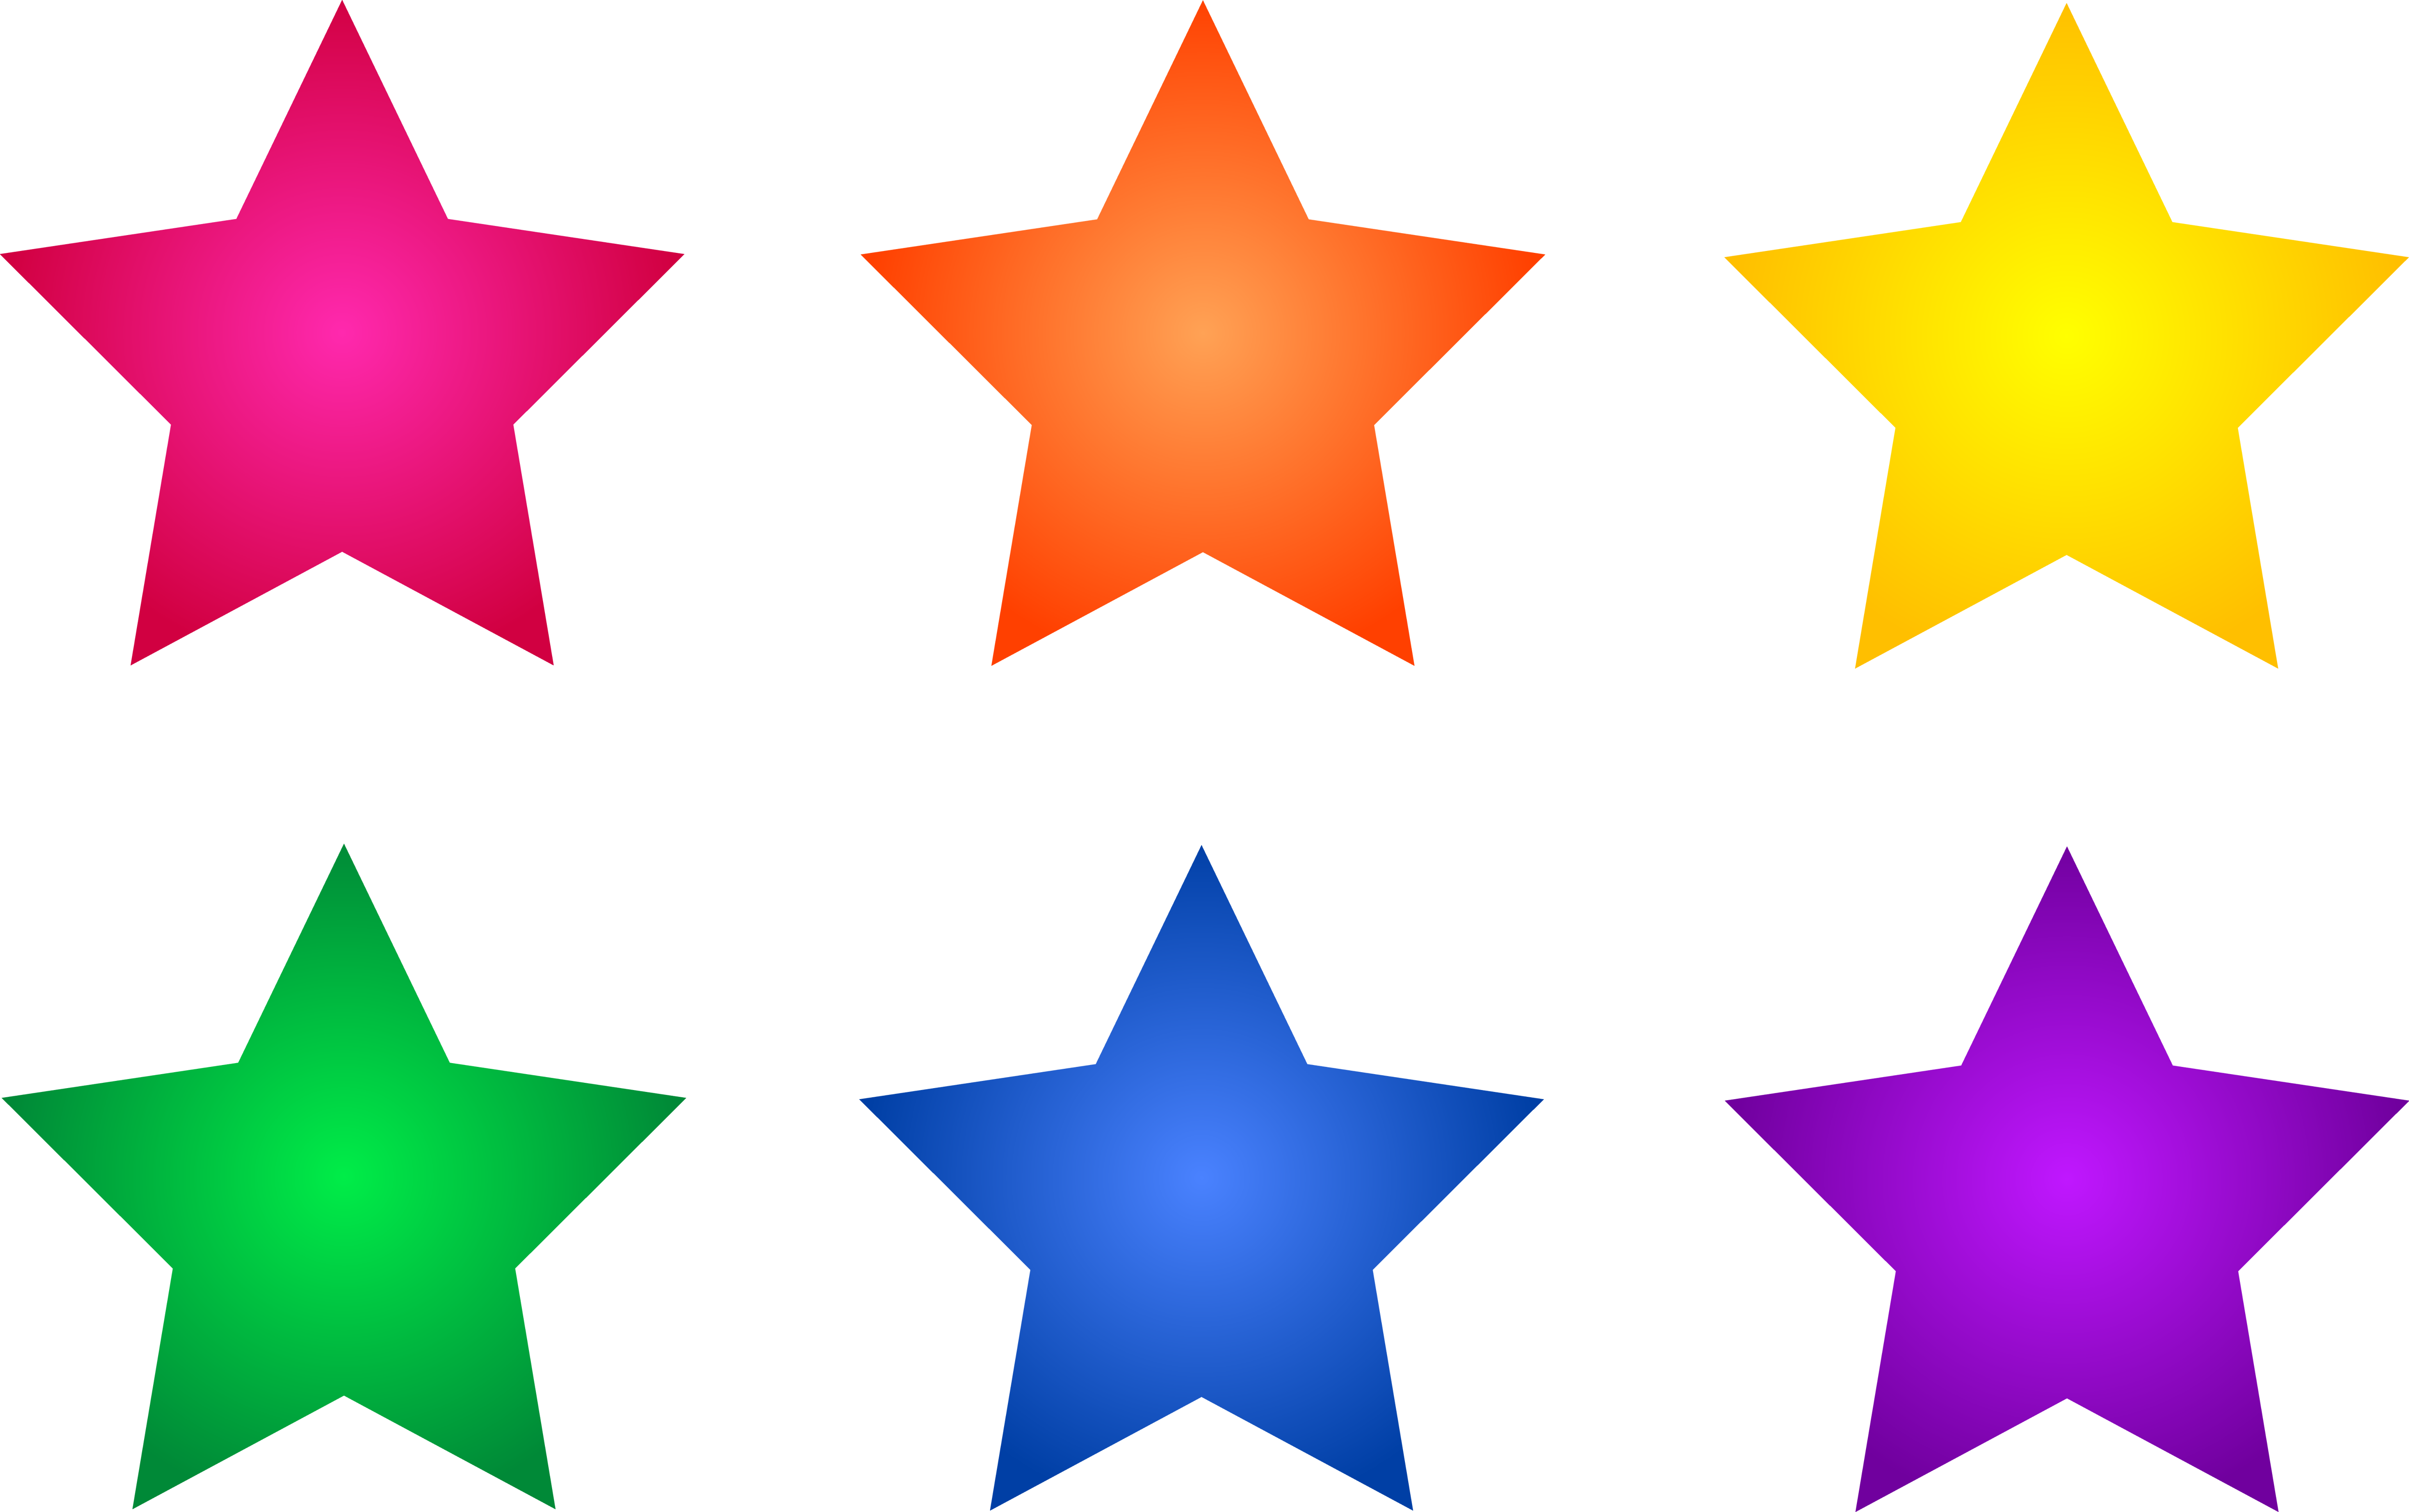 Start clipart colour star. Free images download clip